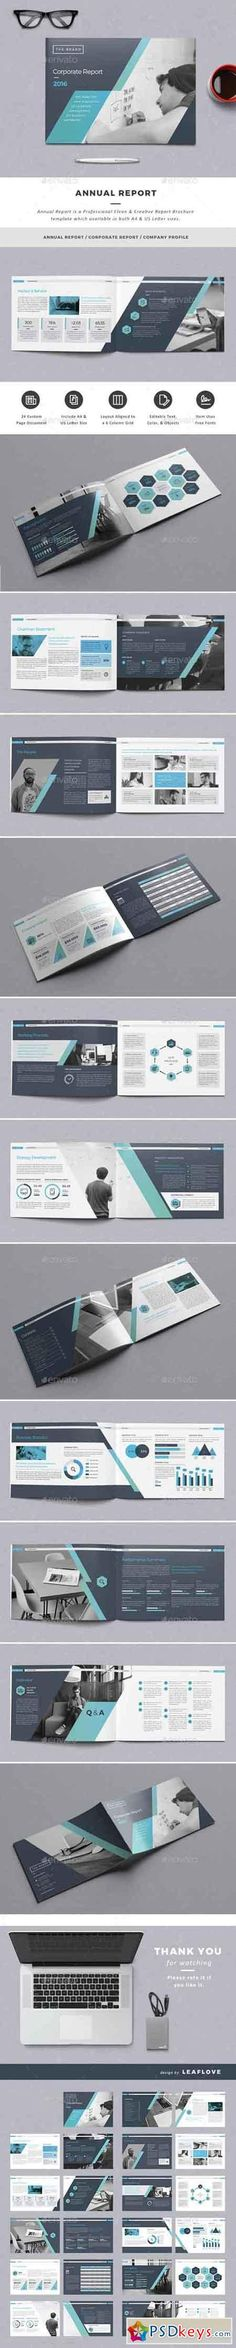 Annual Report Brochure Template InDesign INDD - 20 Pages A4 - annual report templates free download